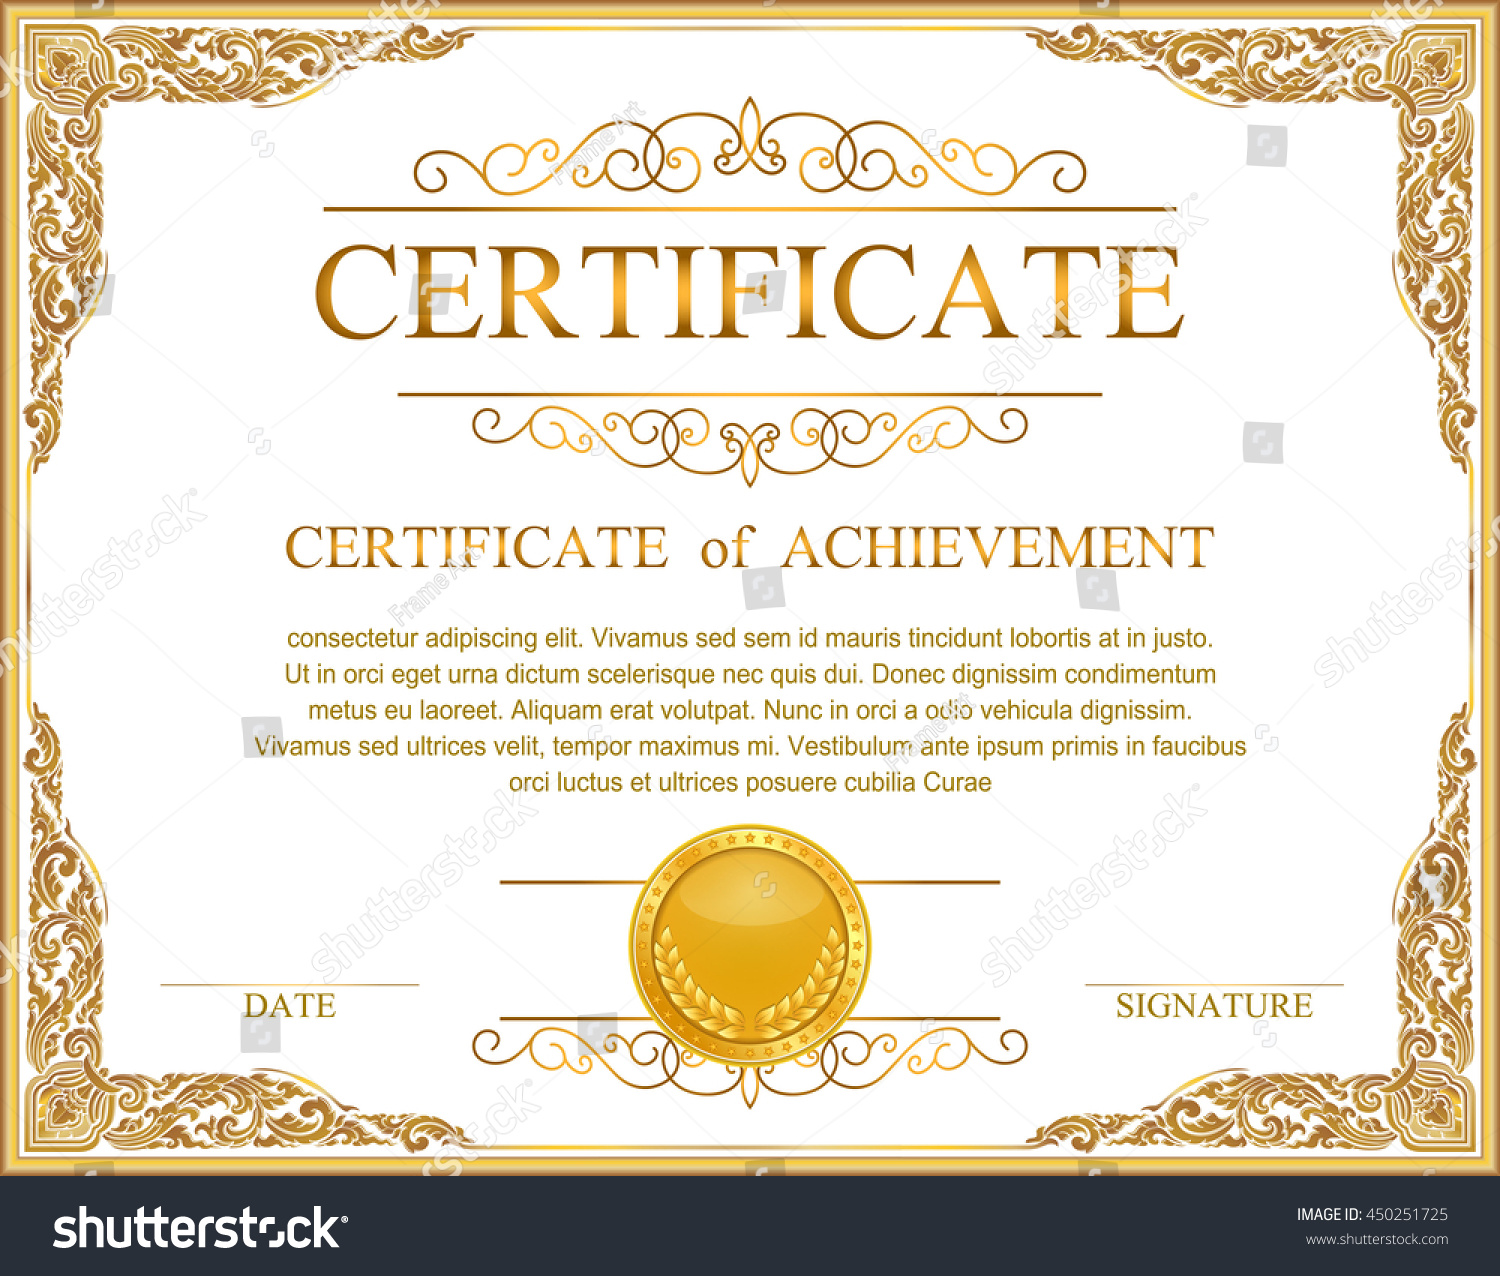 Vintage Retro Frame Certificate Background Design Stock ...